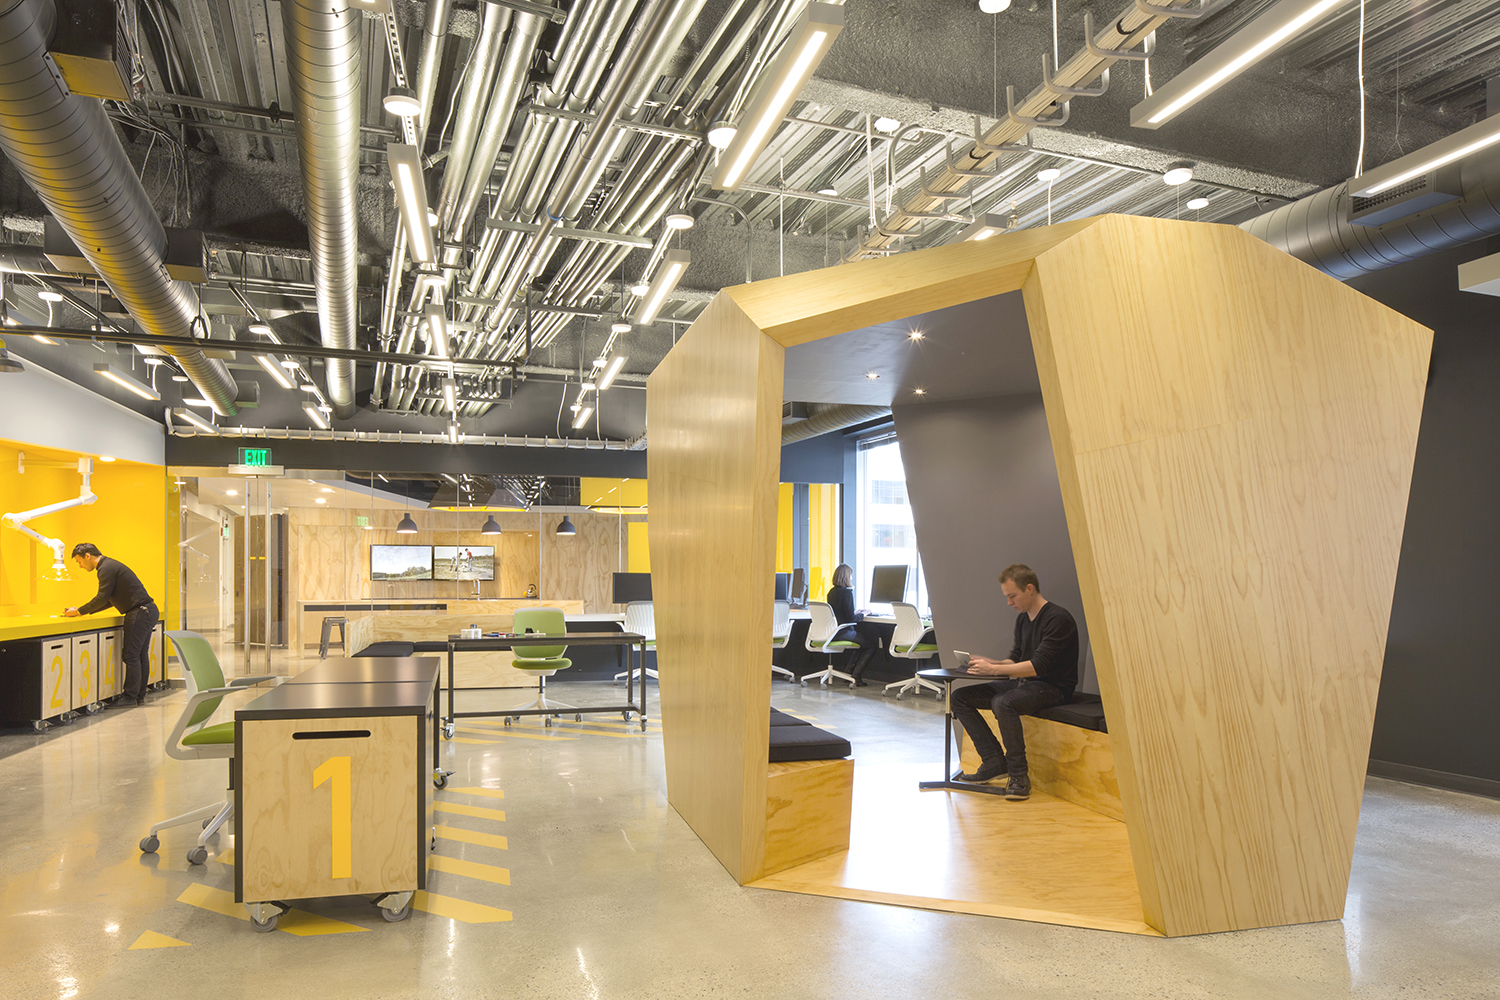 Co lab mit beaver works bsa design awards boston for Space design group architects and interior designers